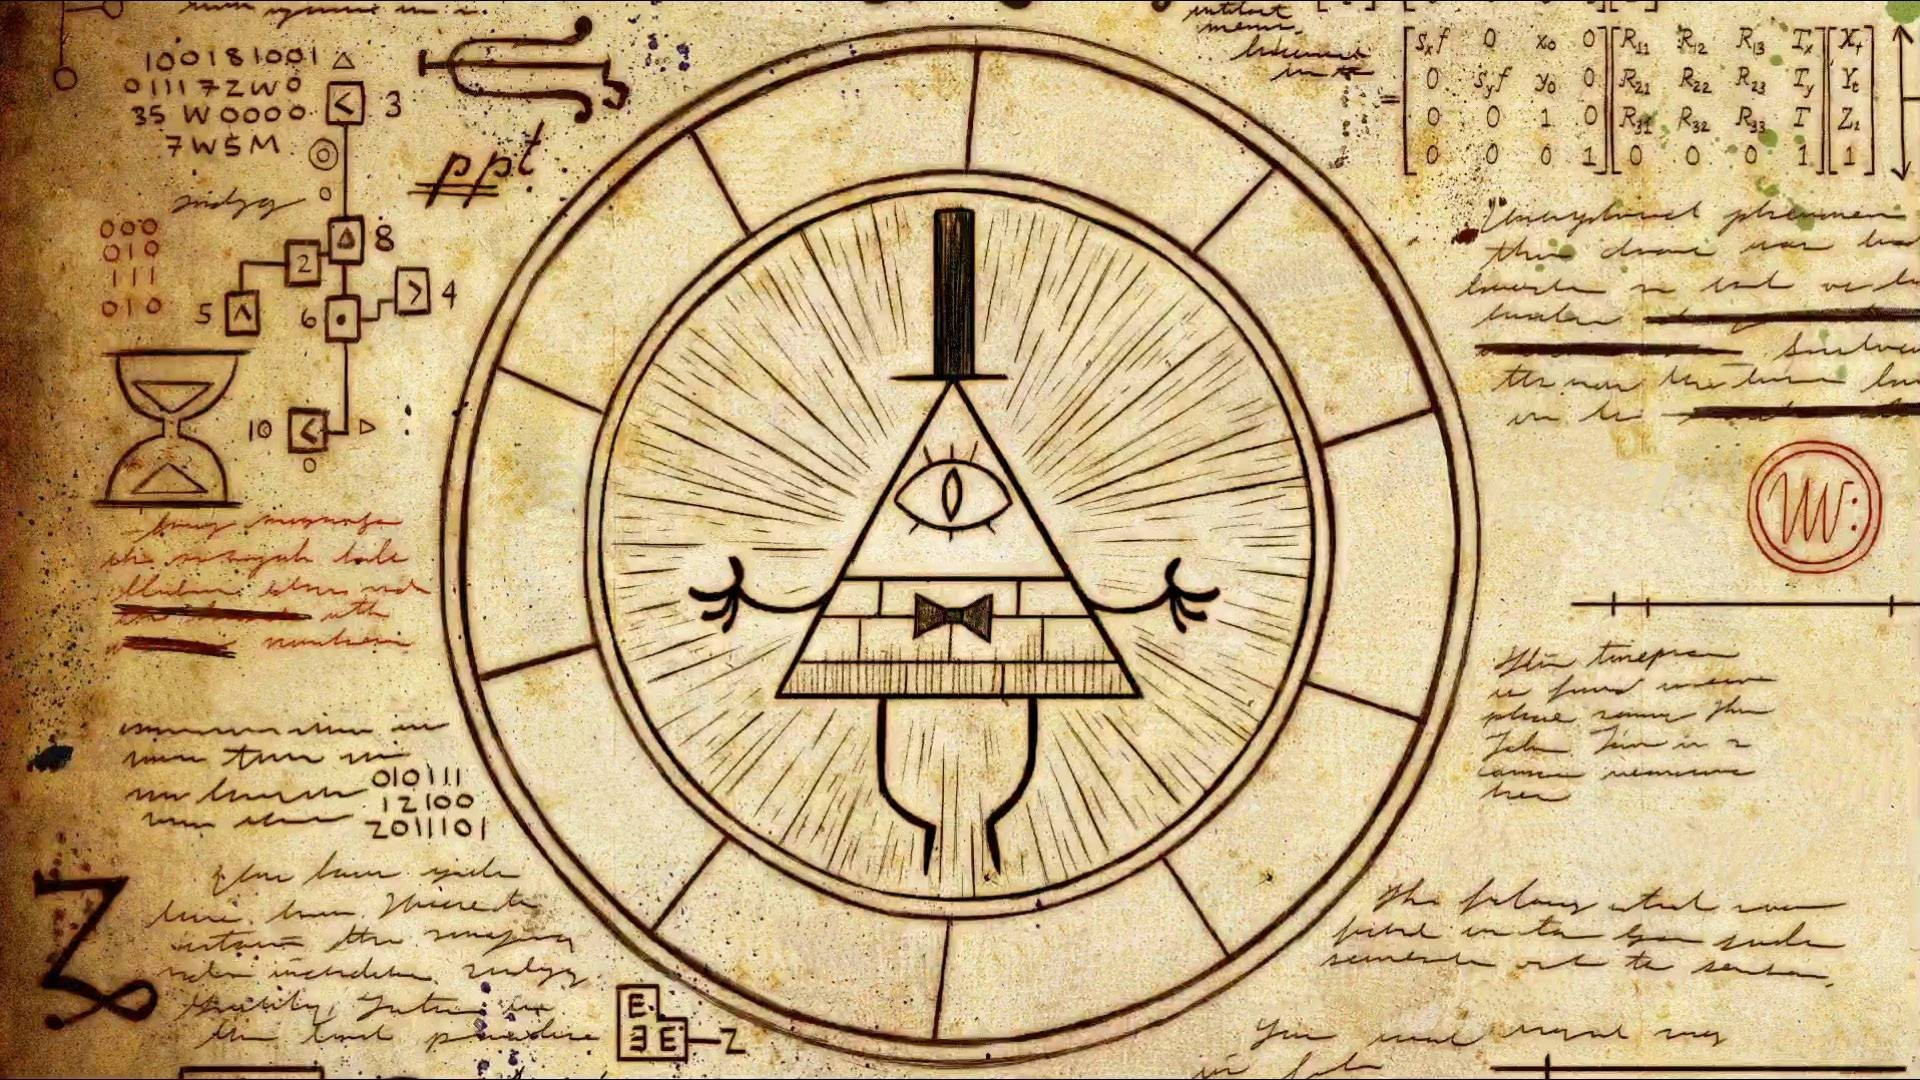 1920x1080 Gravity Falls Illuminati Disney Cartoon science wallpaper background .